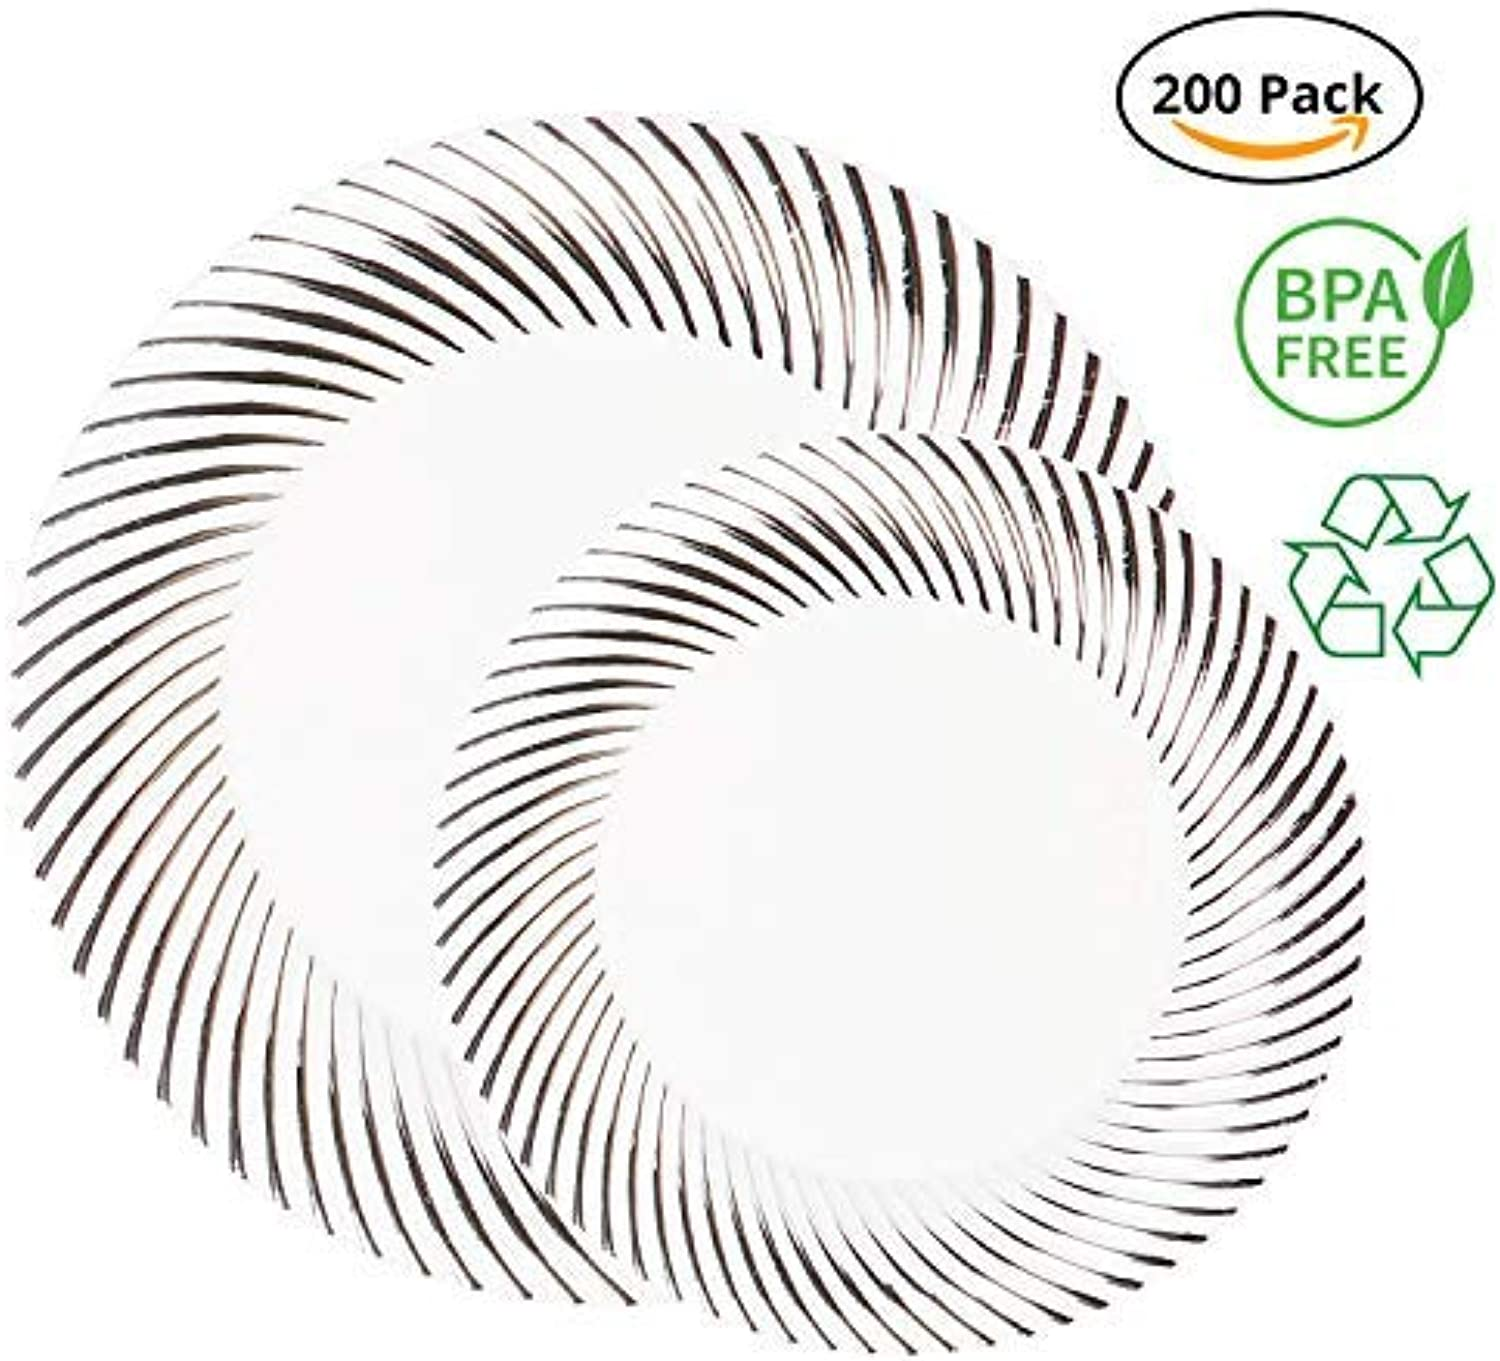 Party Joy 200-Piece Plastic Dinnerware Set   Swirl Collection   (100) Dinner Plates & (100) Salad Plates   Heavy Duty Premium Plastic Plates for Wedding, Parties, Camping & More (Silver Swirl)